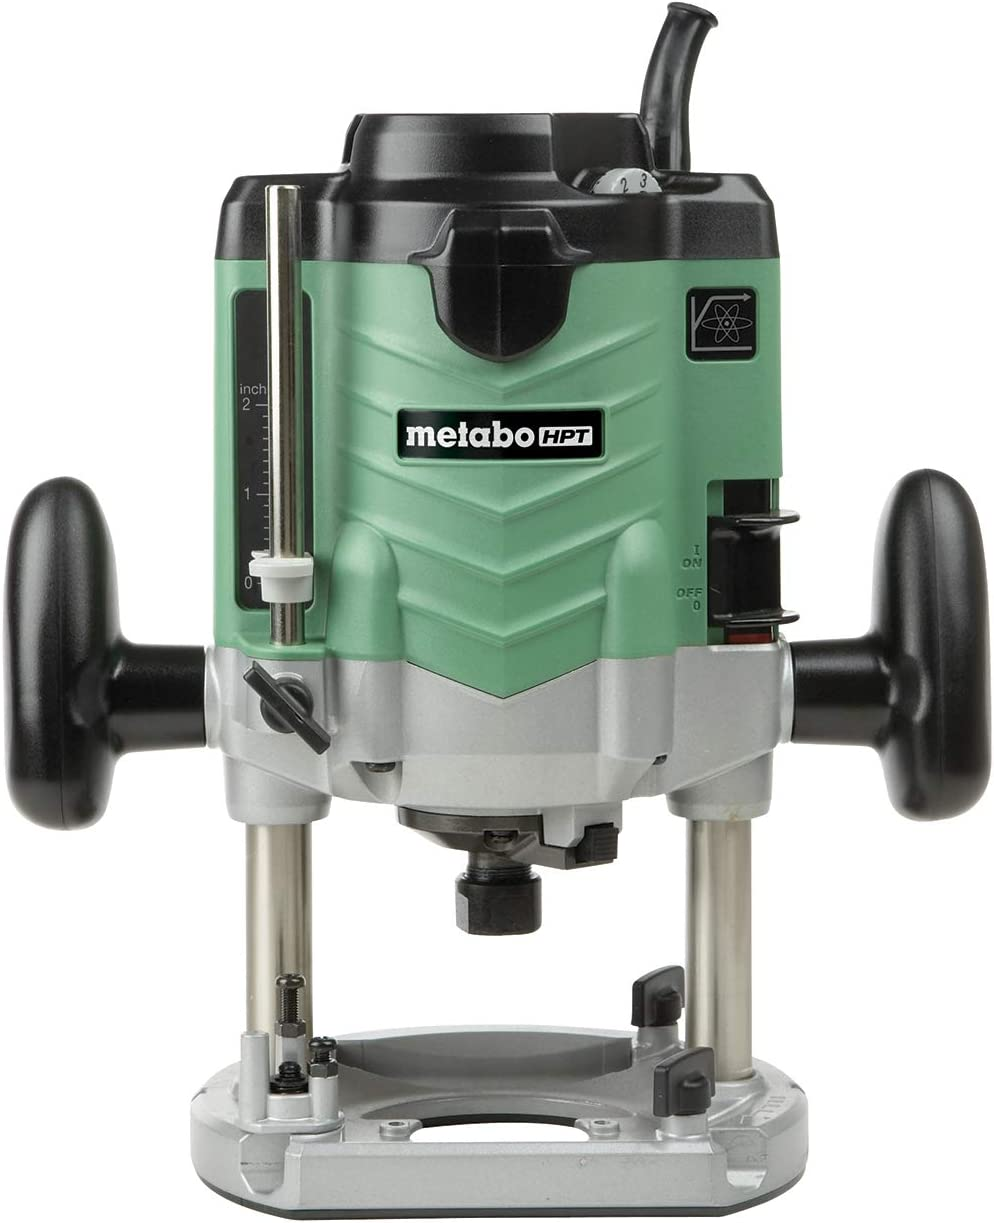 Metabo HPT M12VE 3-1/4 Peak Hp Variable Speed Plunge Router